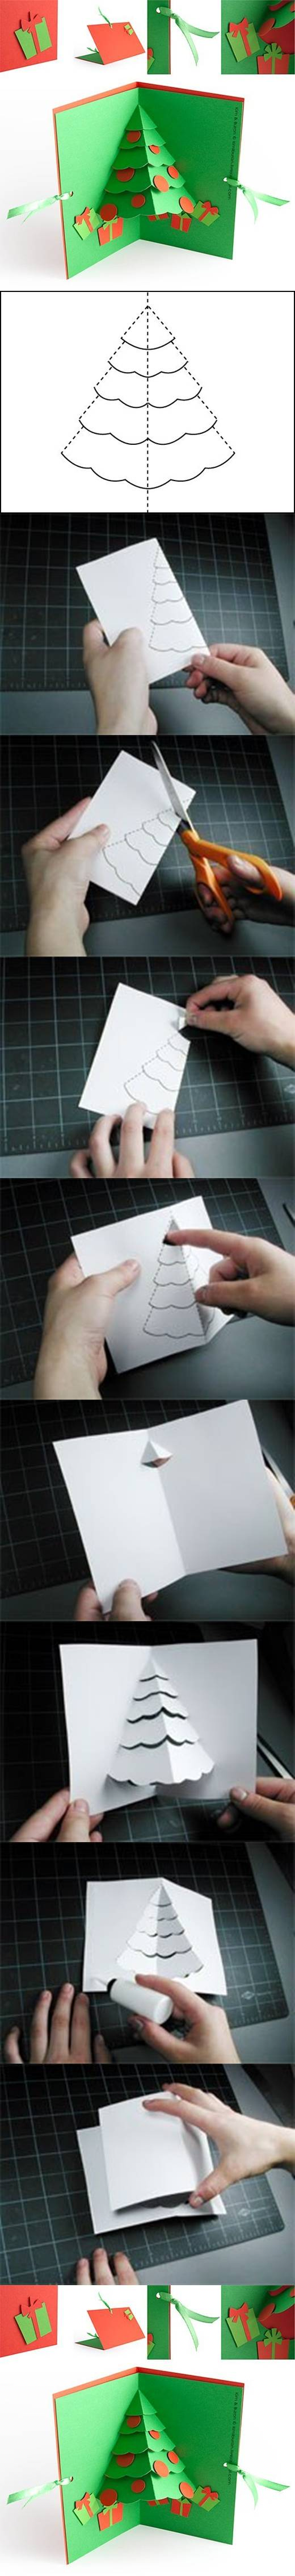 DIY-Christmas-Tree-Pop-Up-Card (1)